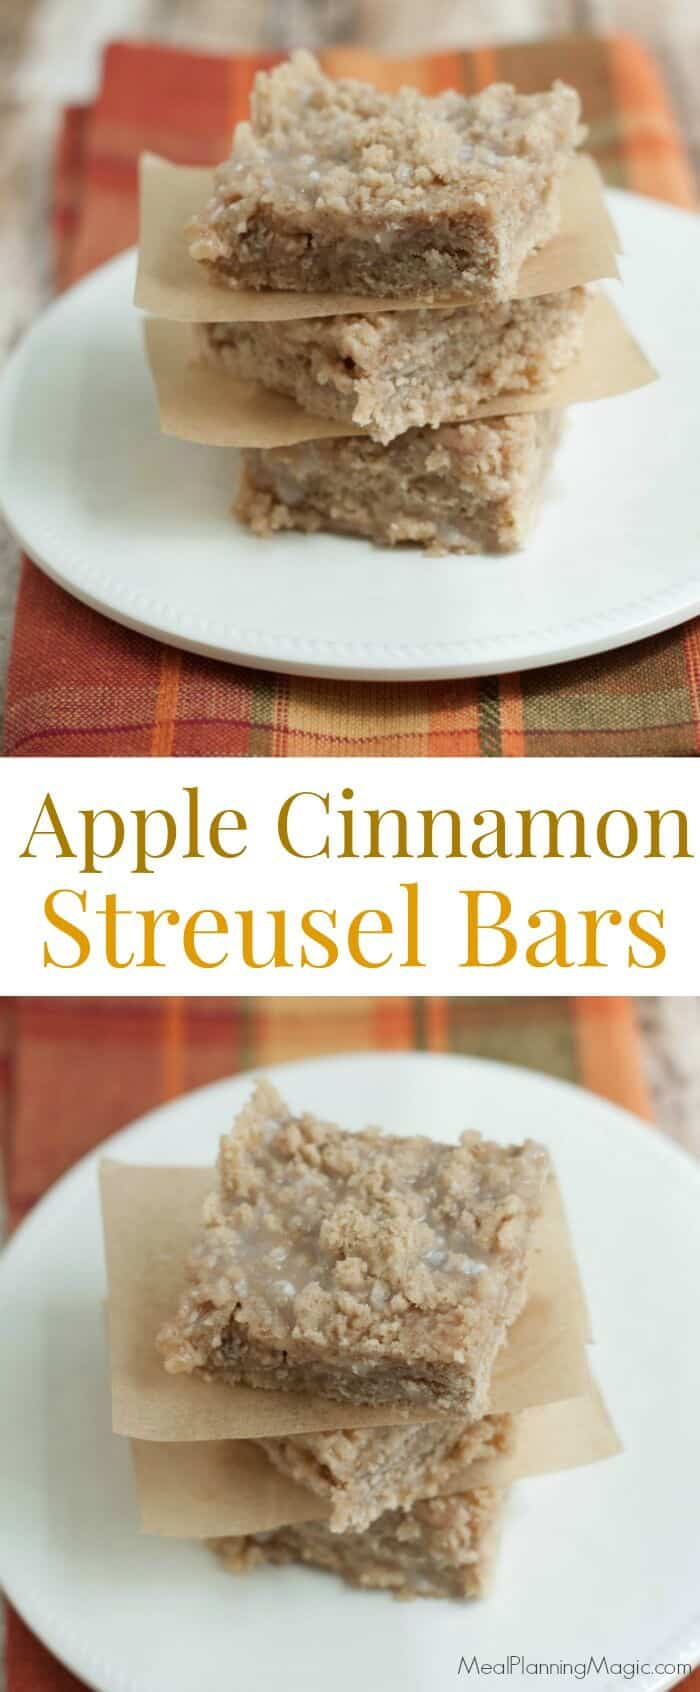 These Apple Cinnamon Streusel Bars are perfect for fall--or any time of year when you want a slightly sweet, cinnamony treat! They come together easily too. Find the recipe at MealPlanningMagic.com